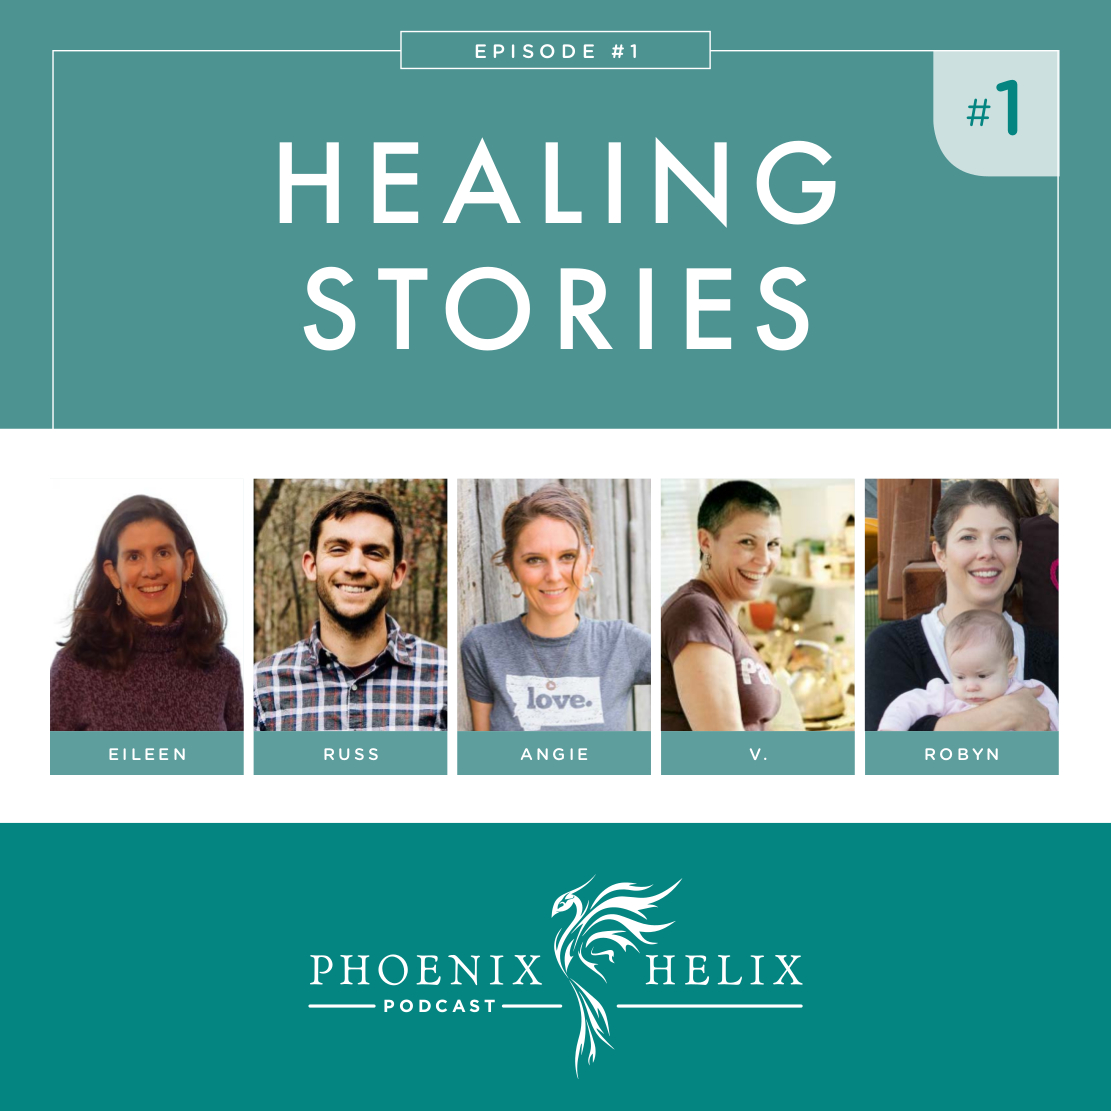 Episode 1 of the Phoenix Helix Podcast: Healing Stories (Rheumatoid Arthritis, Lupus, Multiple Sclerosis, Takayasu's Arteritis, and Multiple Autoimmune Syndrome)